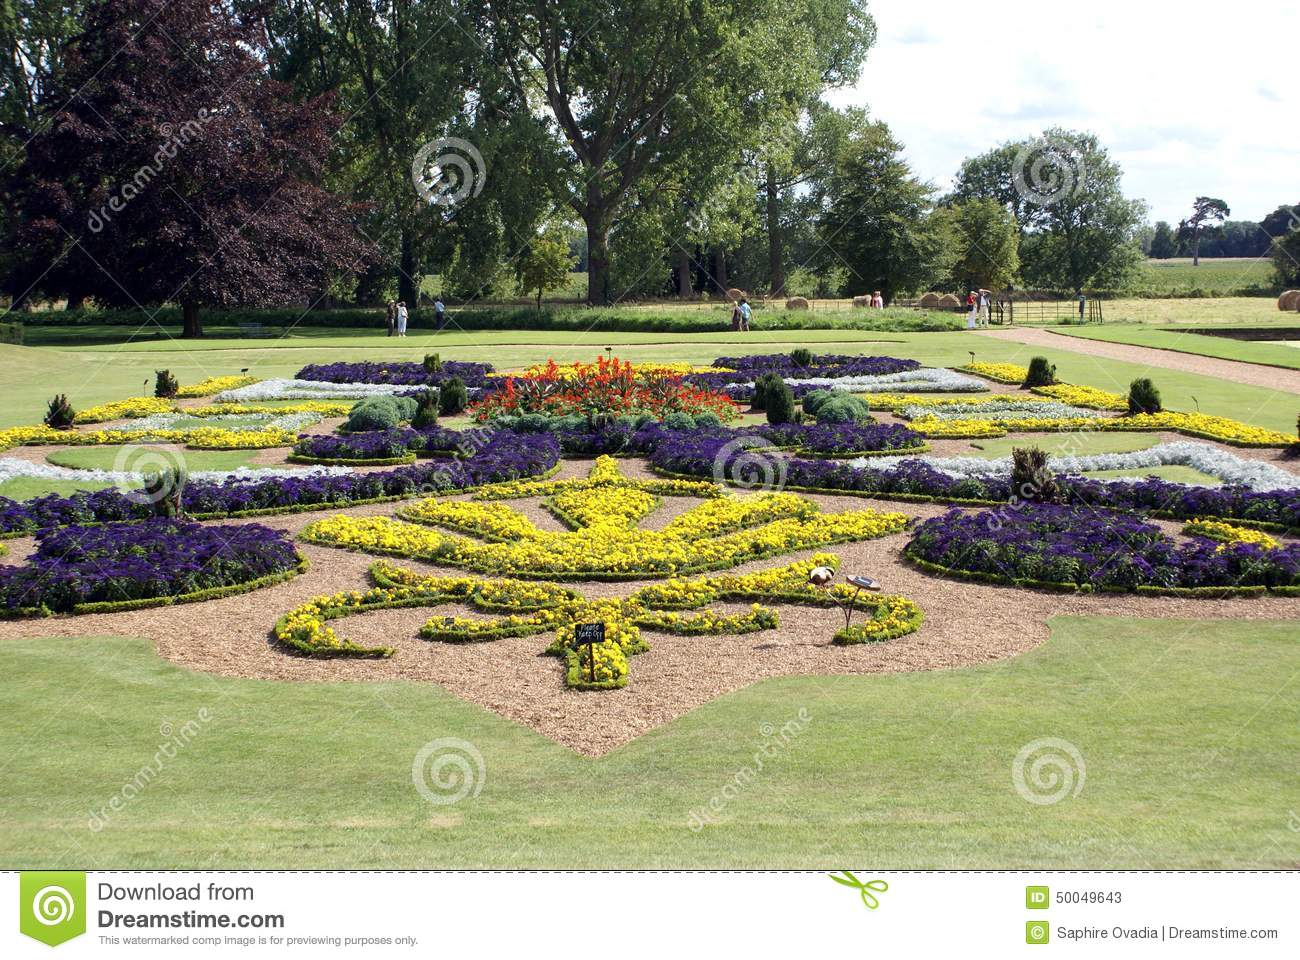 Garden art garden design flower beds stock photo image for Garden design graphics